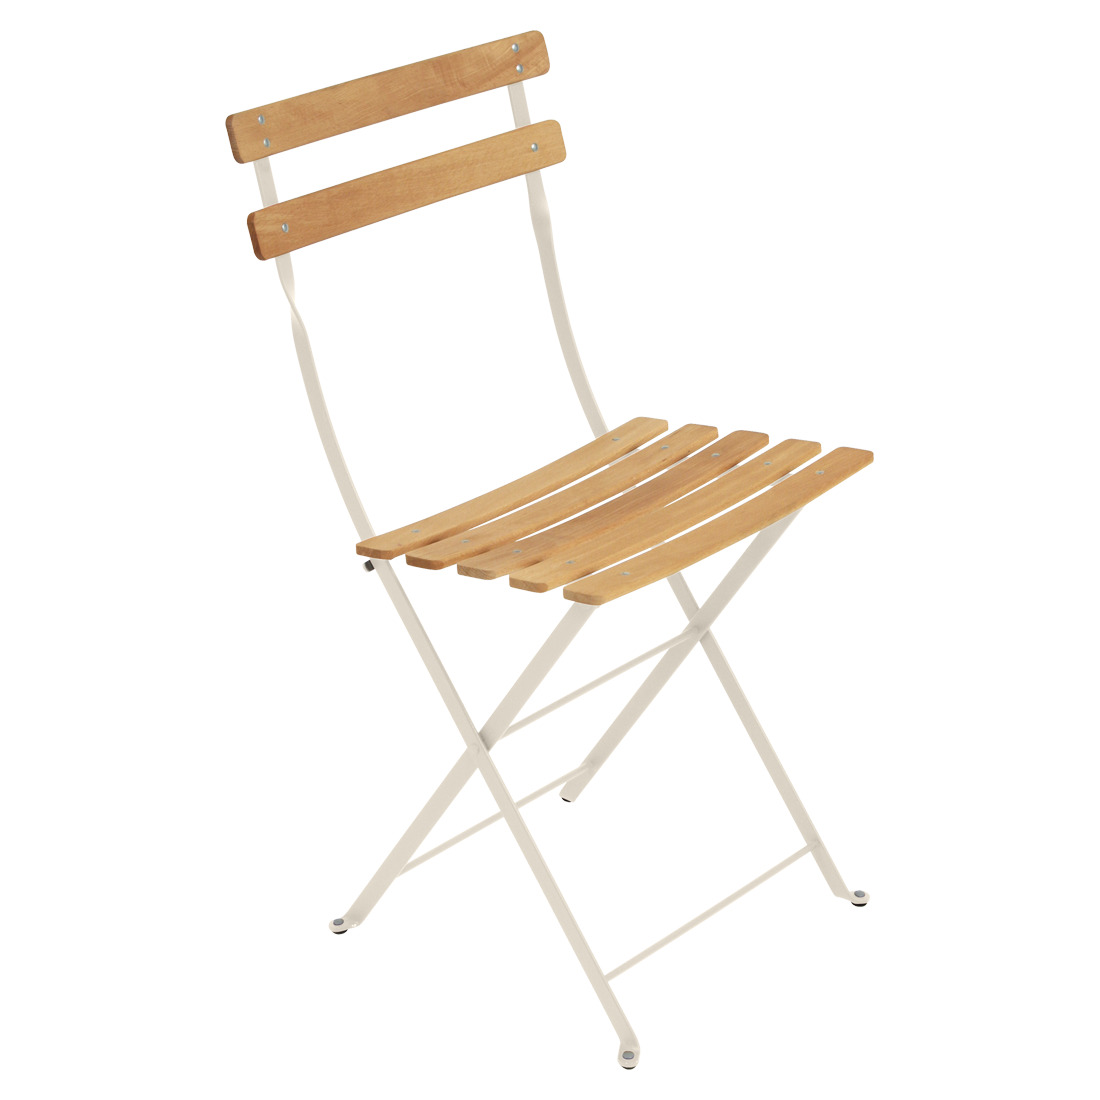 Bistro Naturel Chair Metal And Wood Chair Outdoor Furniture Folding Chair Wood Folding Chair Metal And Wood Chairs